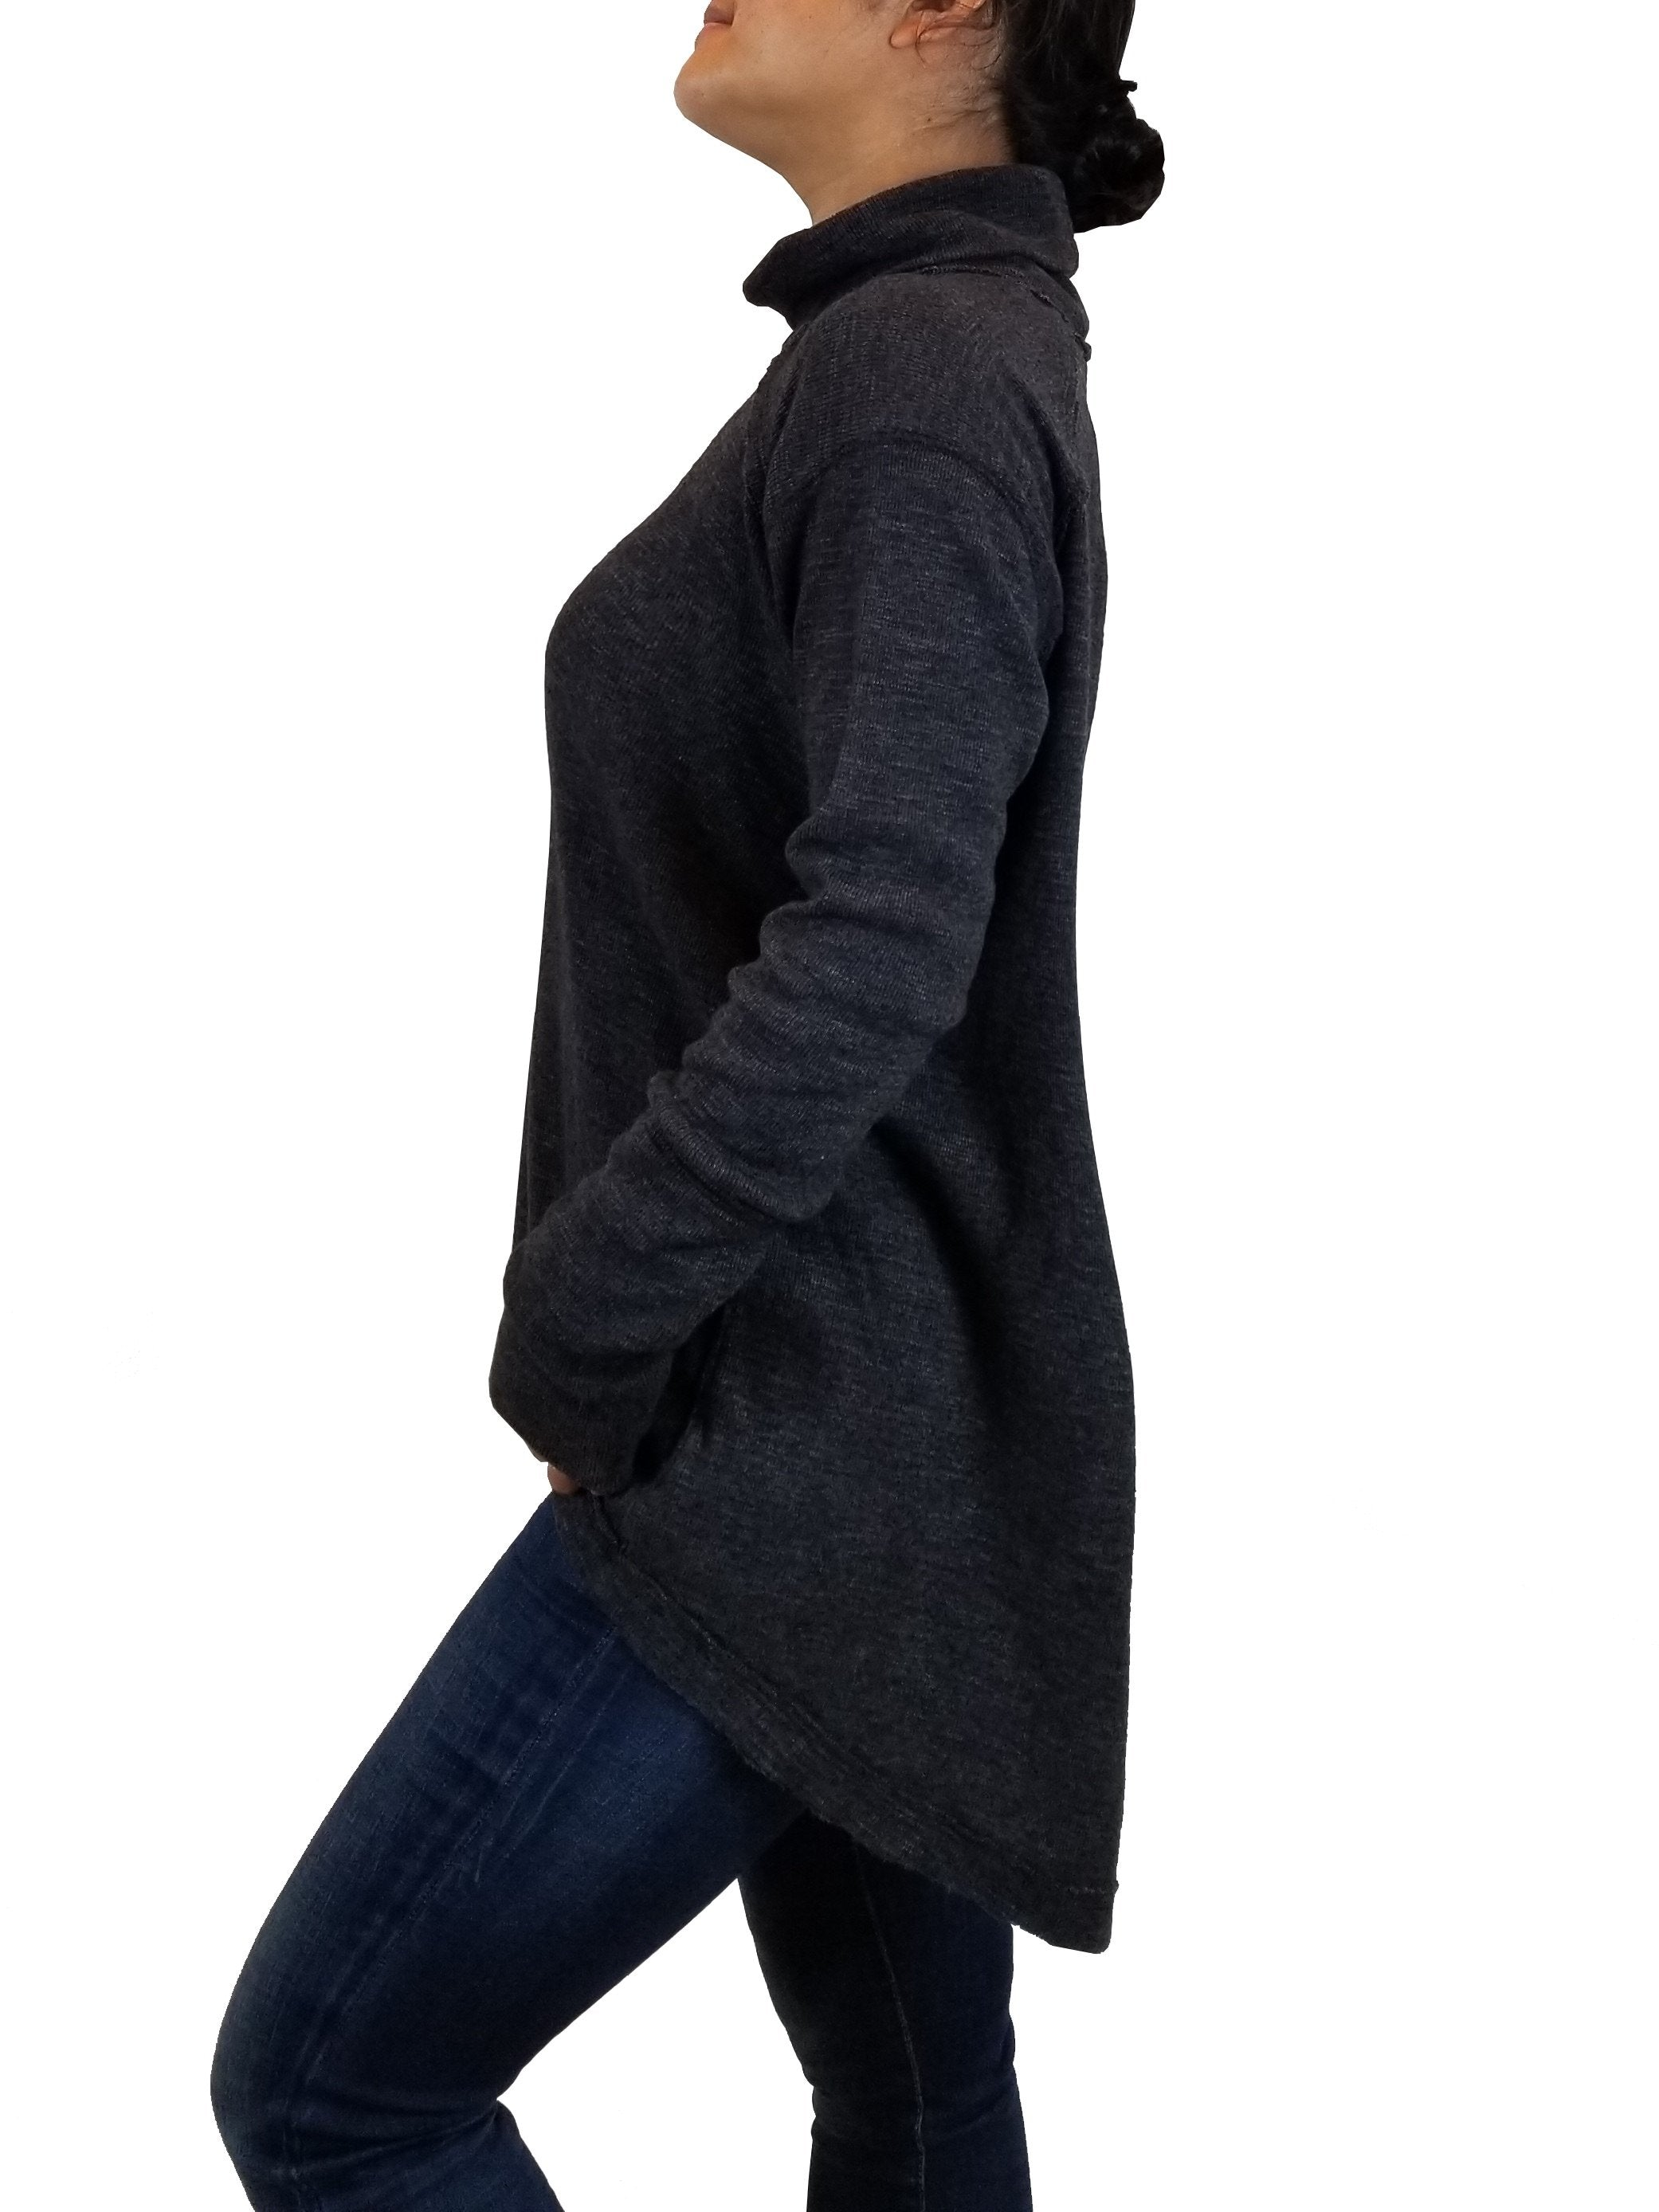 We the free Women's Turtleneck Pullover, Flowy turtleneck pullover for a comfy yet elegant look, Grey, 50% Polyester, 38% Cotton, 12% Rayon, sweater, shirt, turtleneck, loose sweater, women's black turtleneck with open back